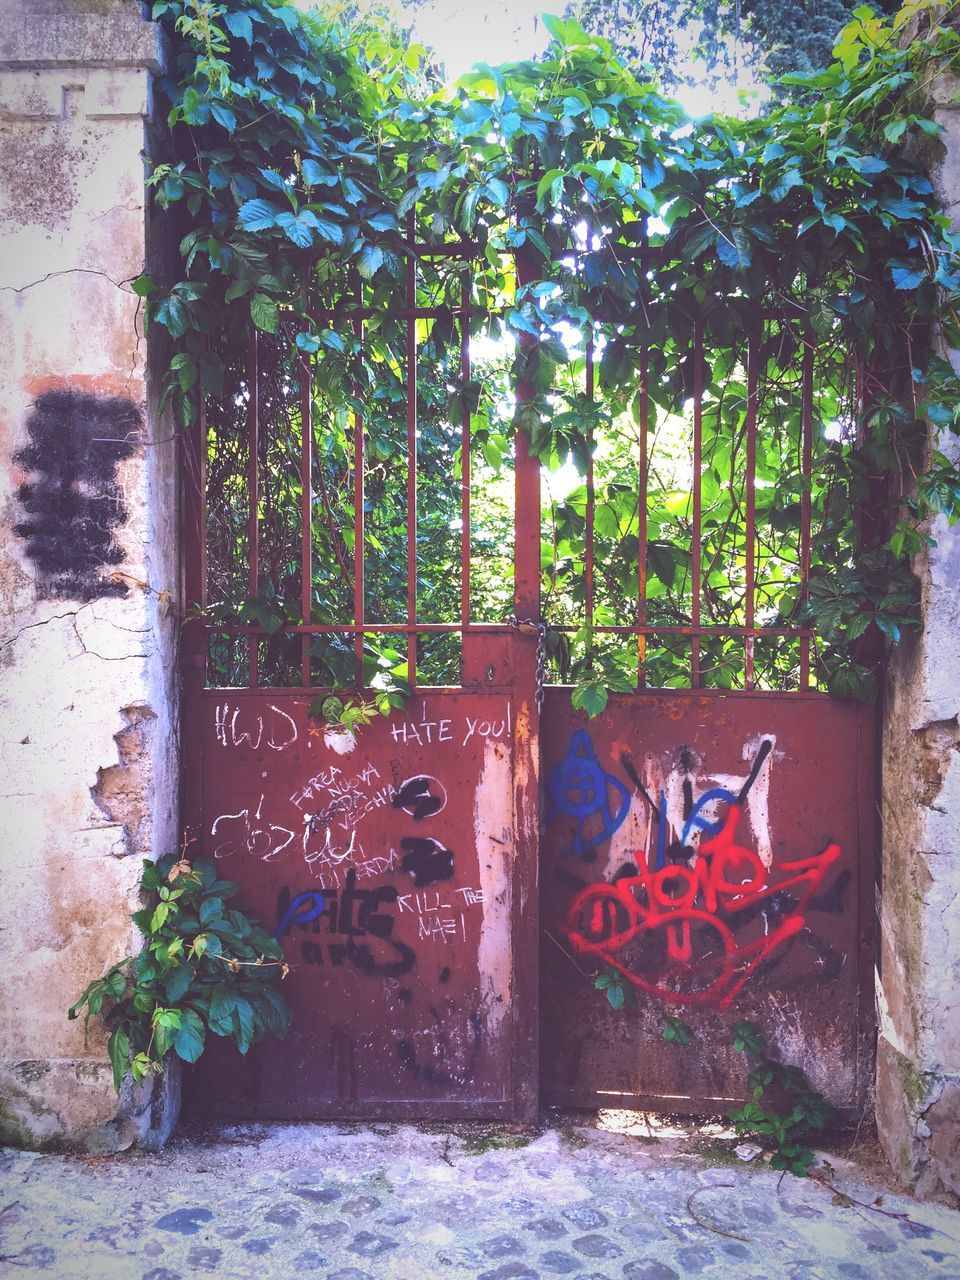 graffiti, tree, text, day, outdoors, growth, no people, plant, built structure, architecture, building exterior, nature